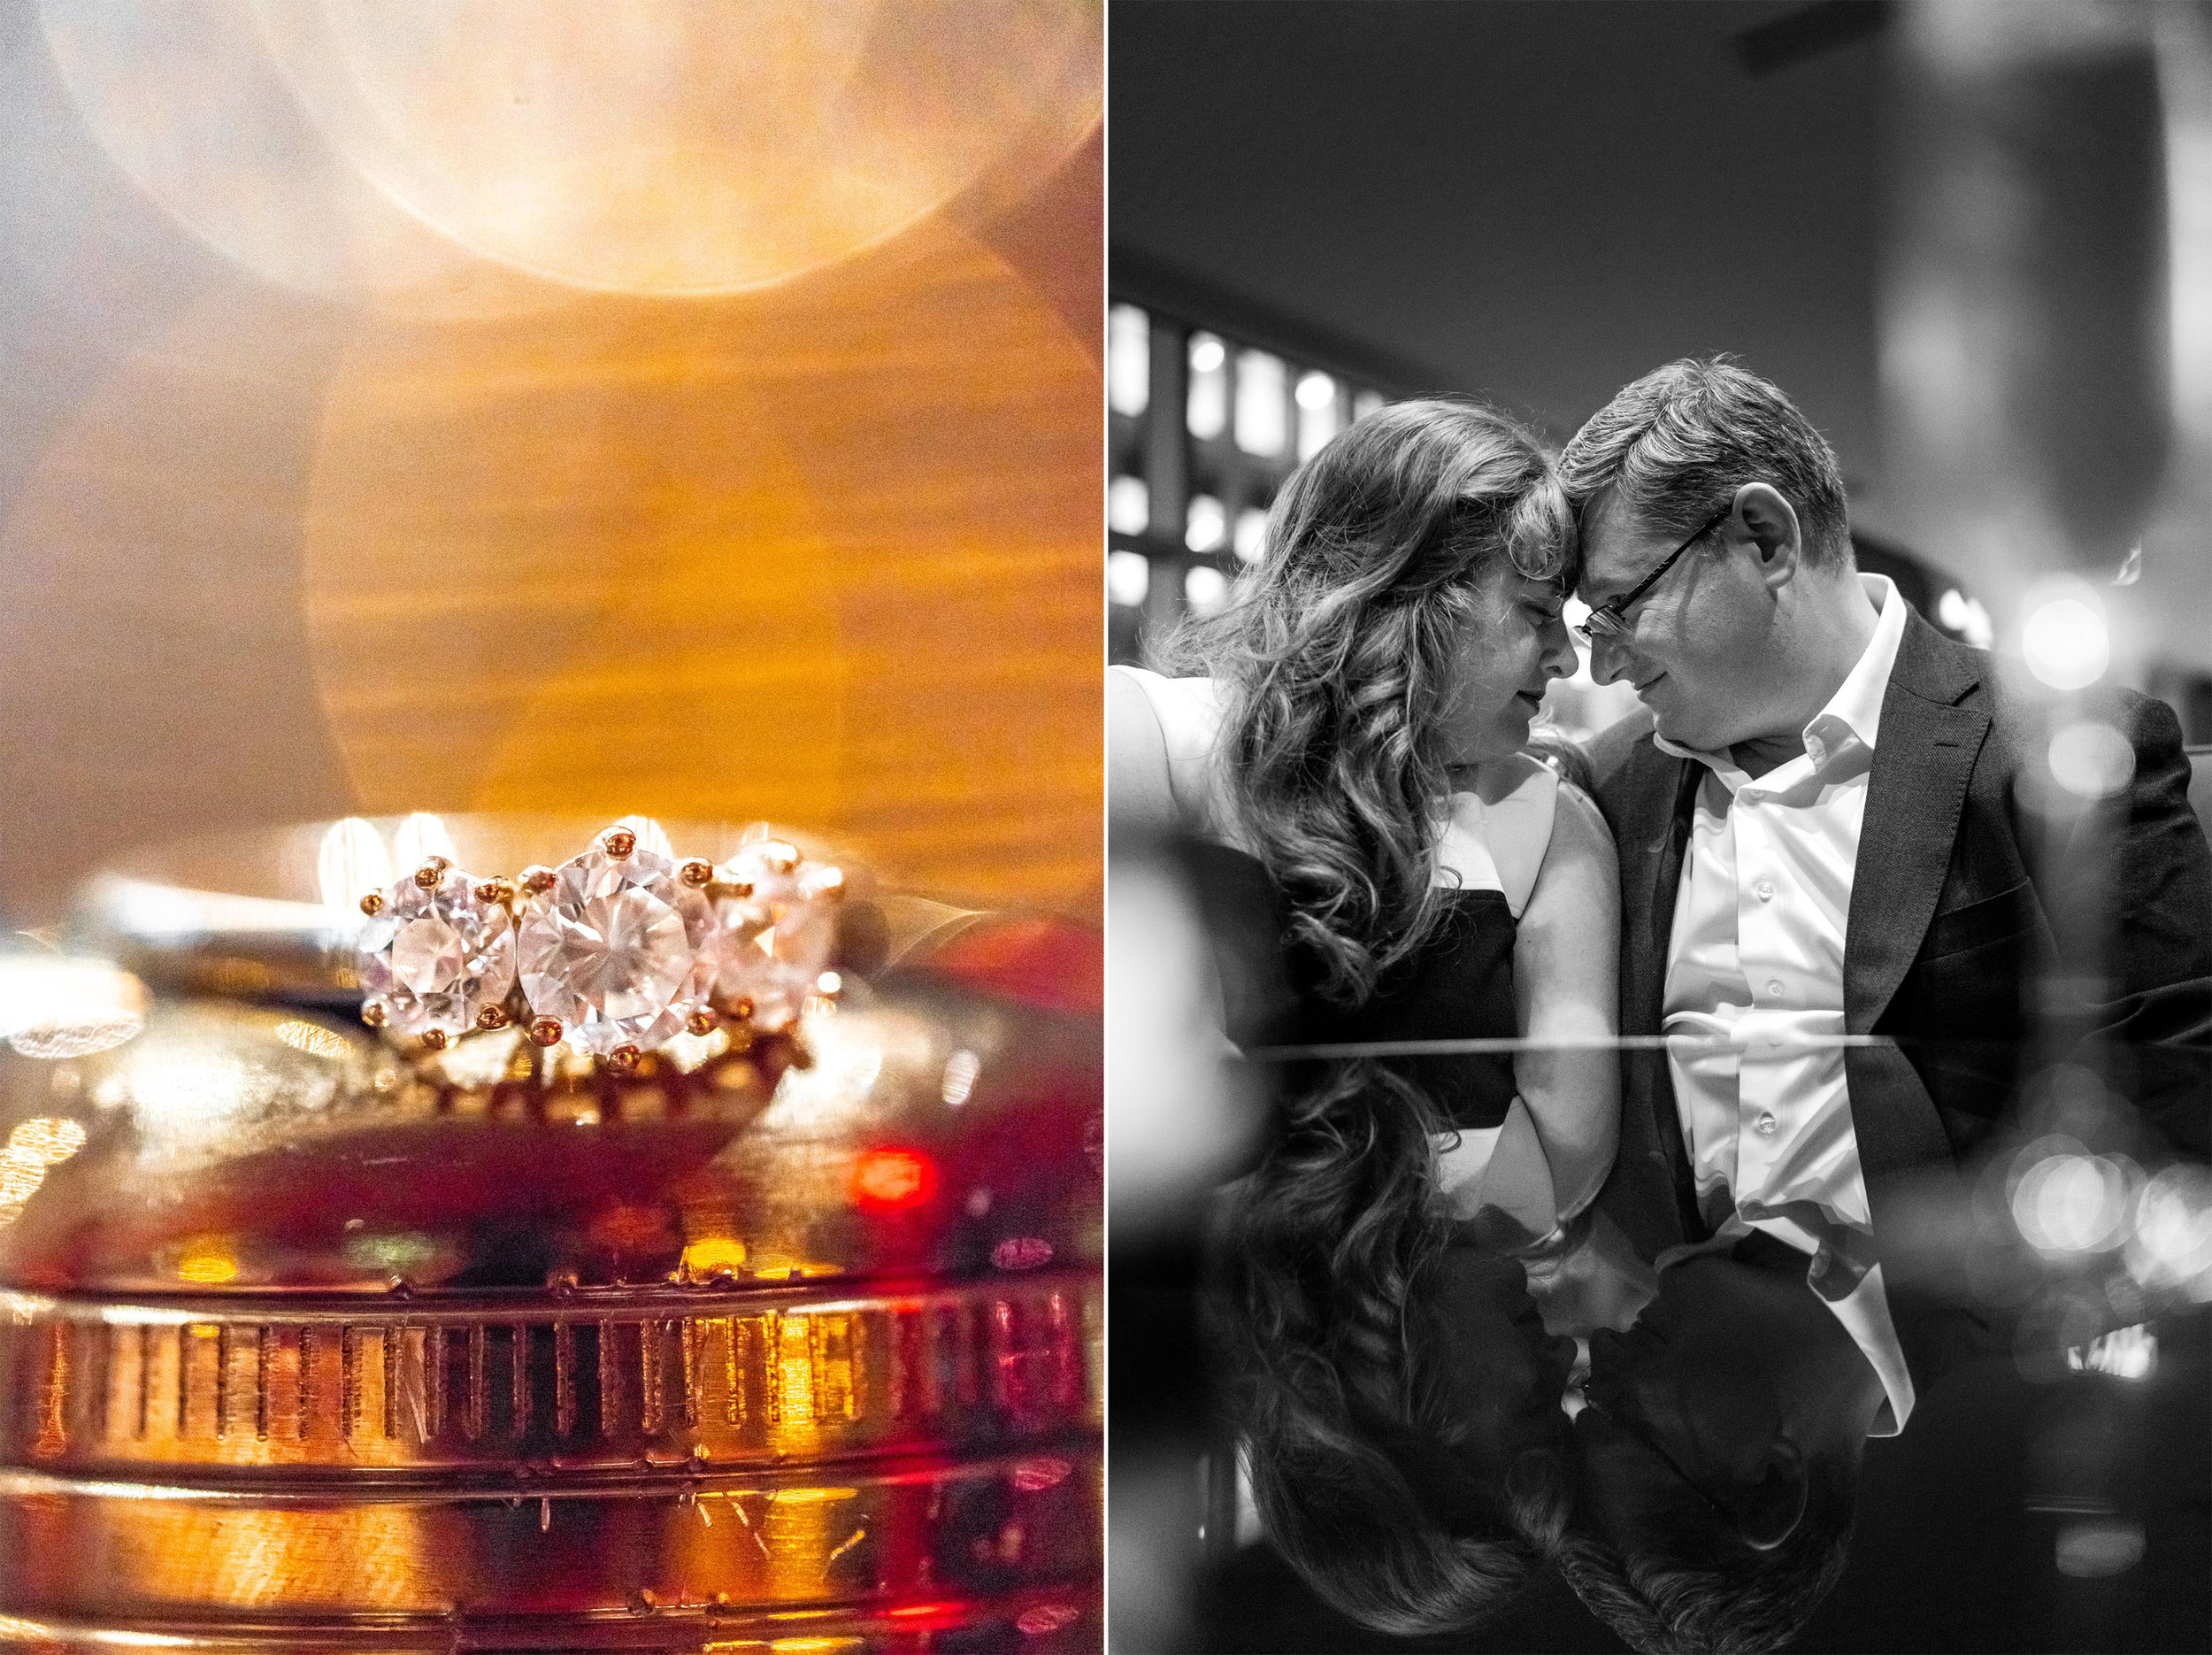 Wolfgang Puck The Source restaurant engagement photos